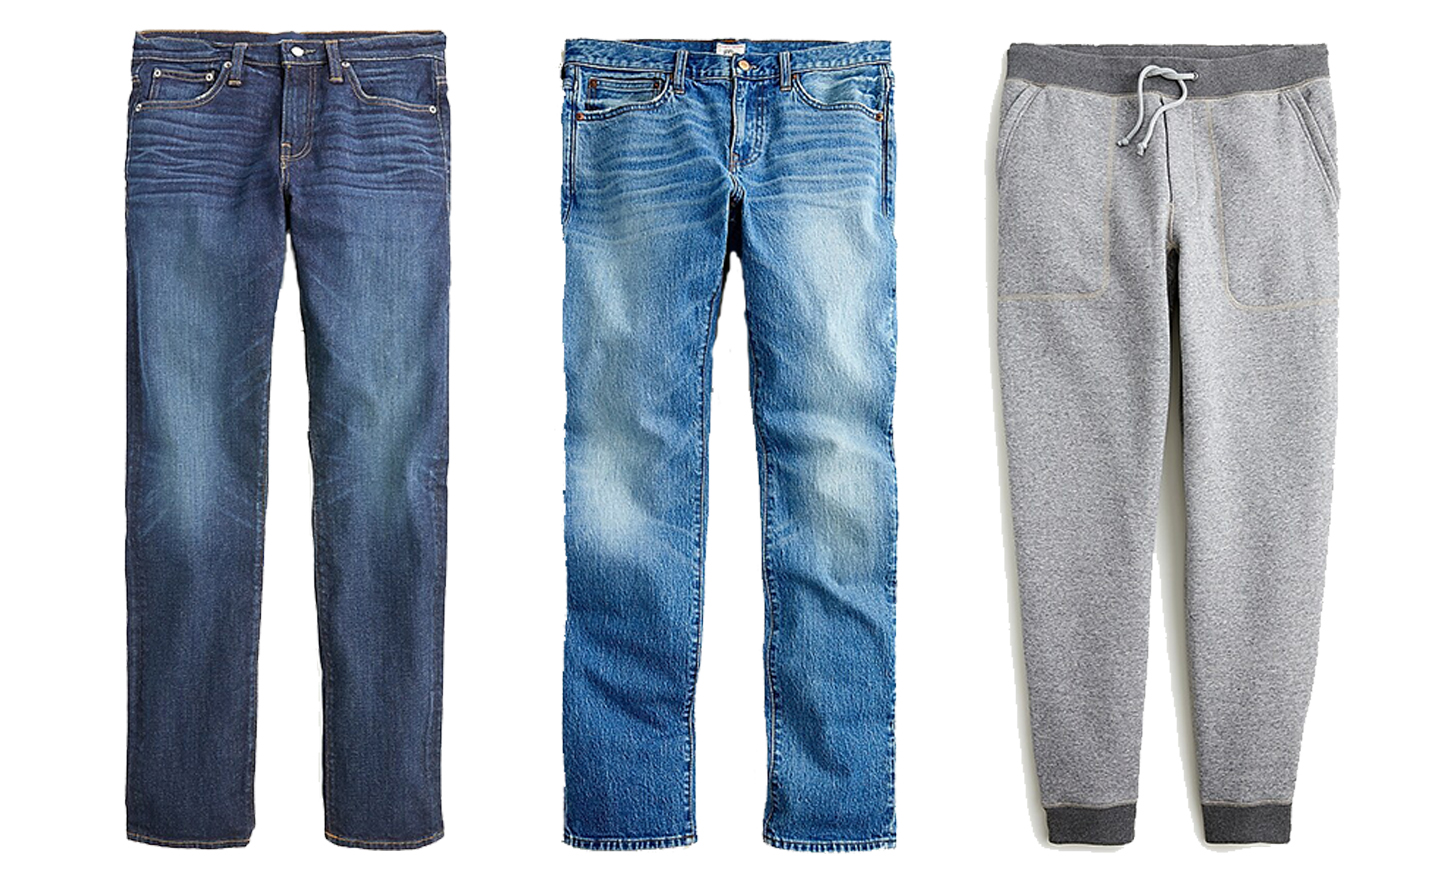 Casual Pants: Dark Wash Jeans/Light Wash Jeans/ Joggers